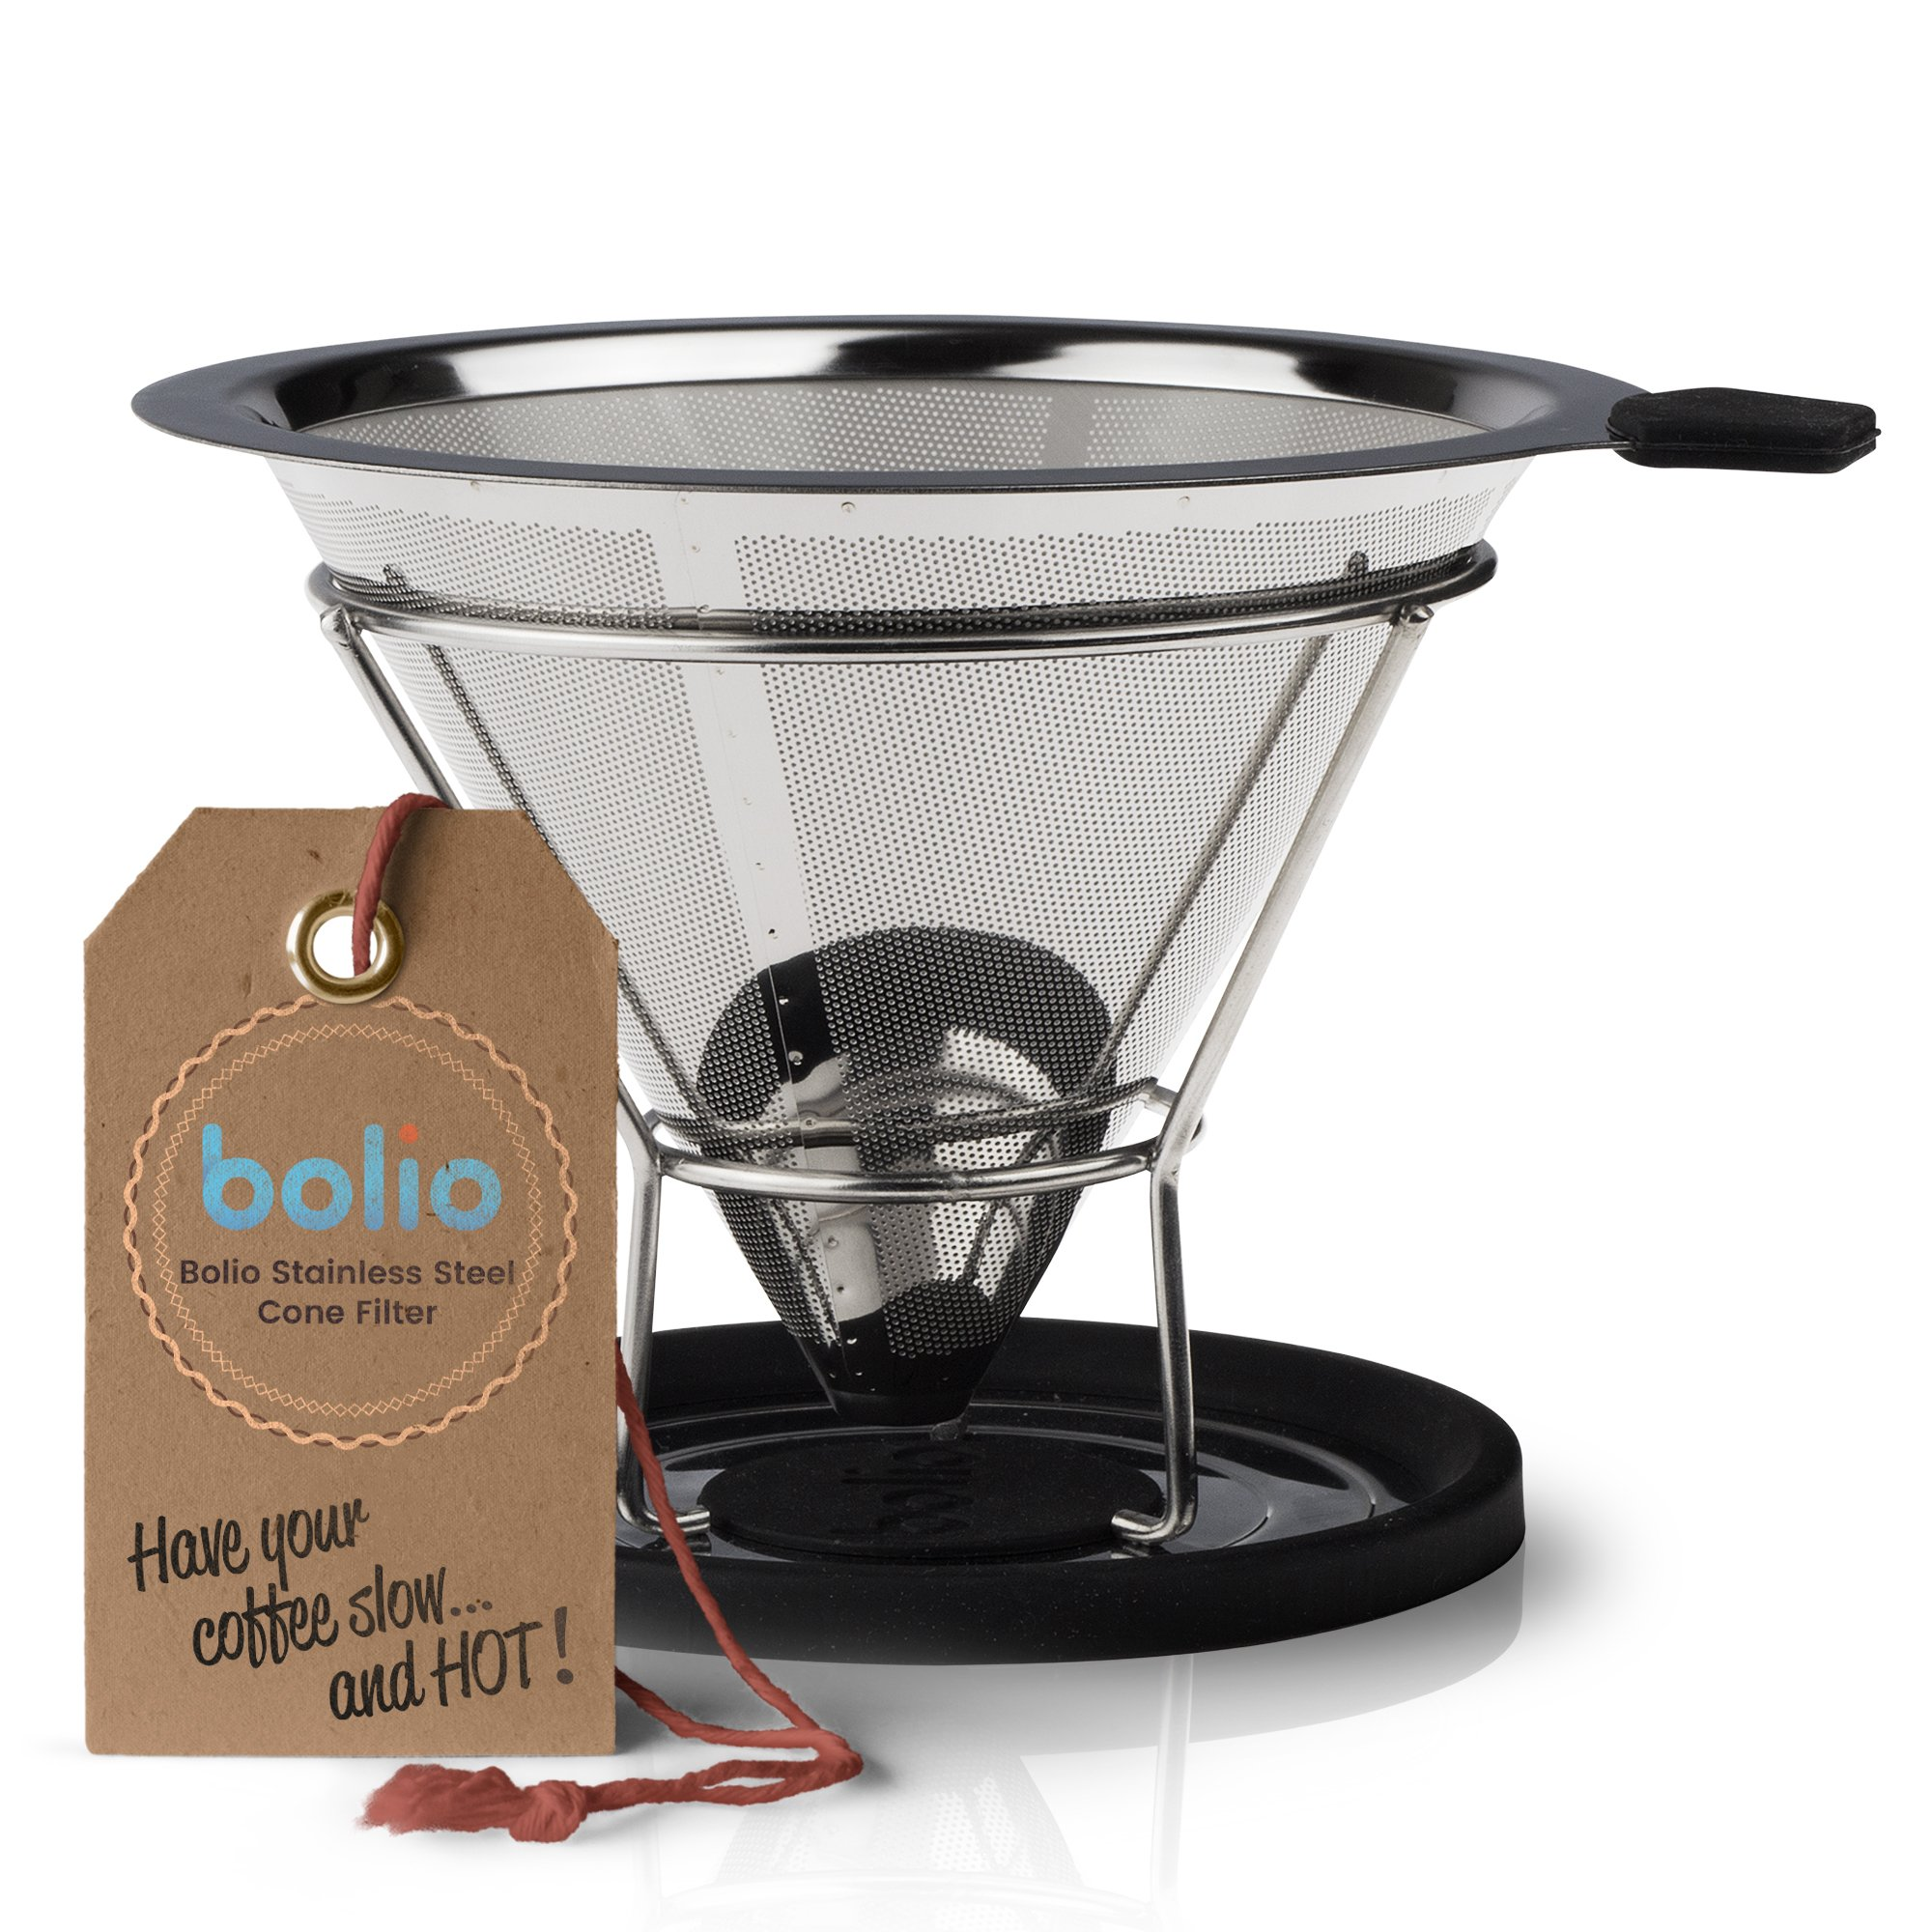 Bolio Stainless Steel Coffee Filter - No 4 Size - Fits Chemex, Bodum and most 10 Cup Coffee Makers (No.4)